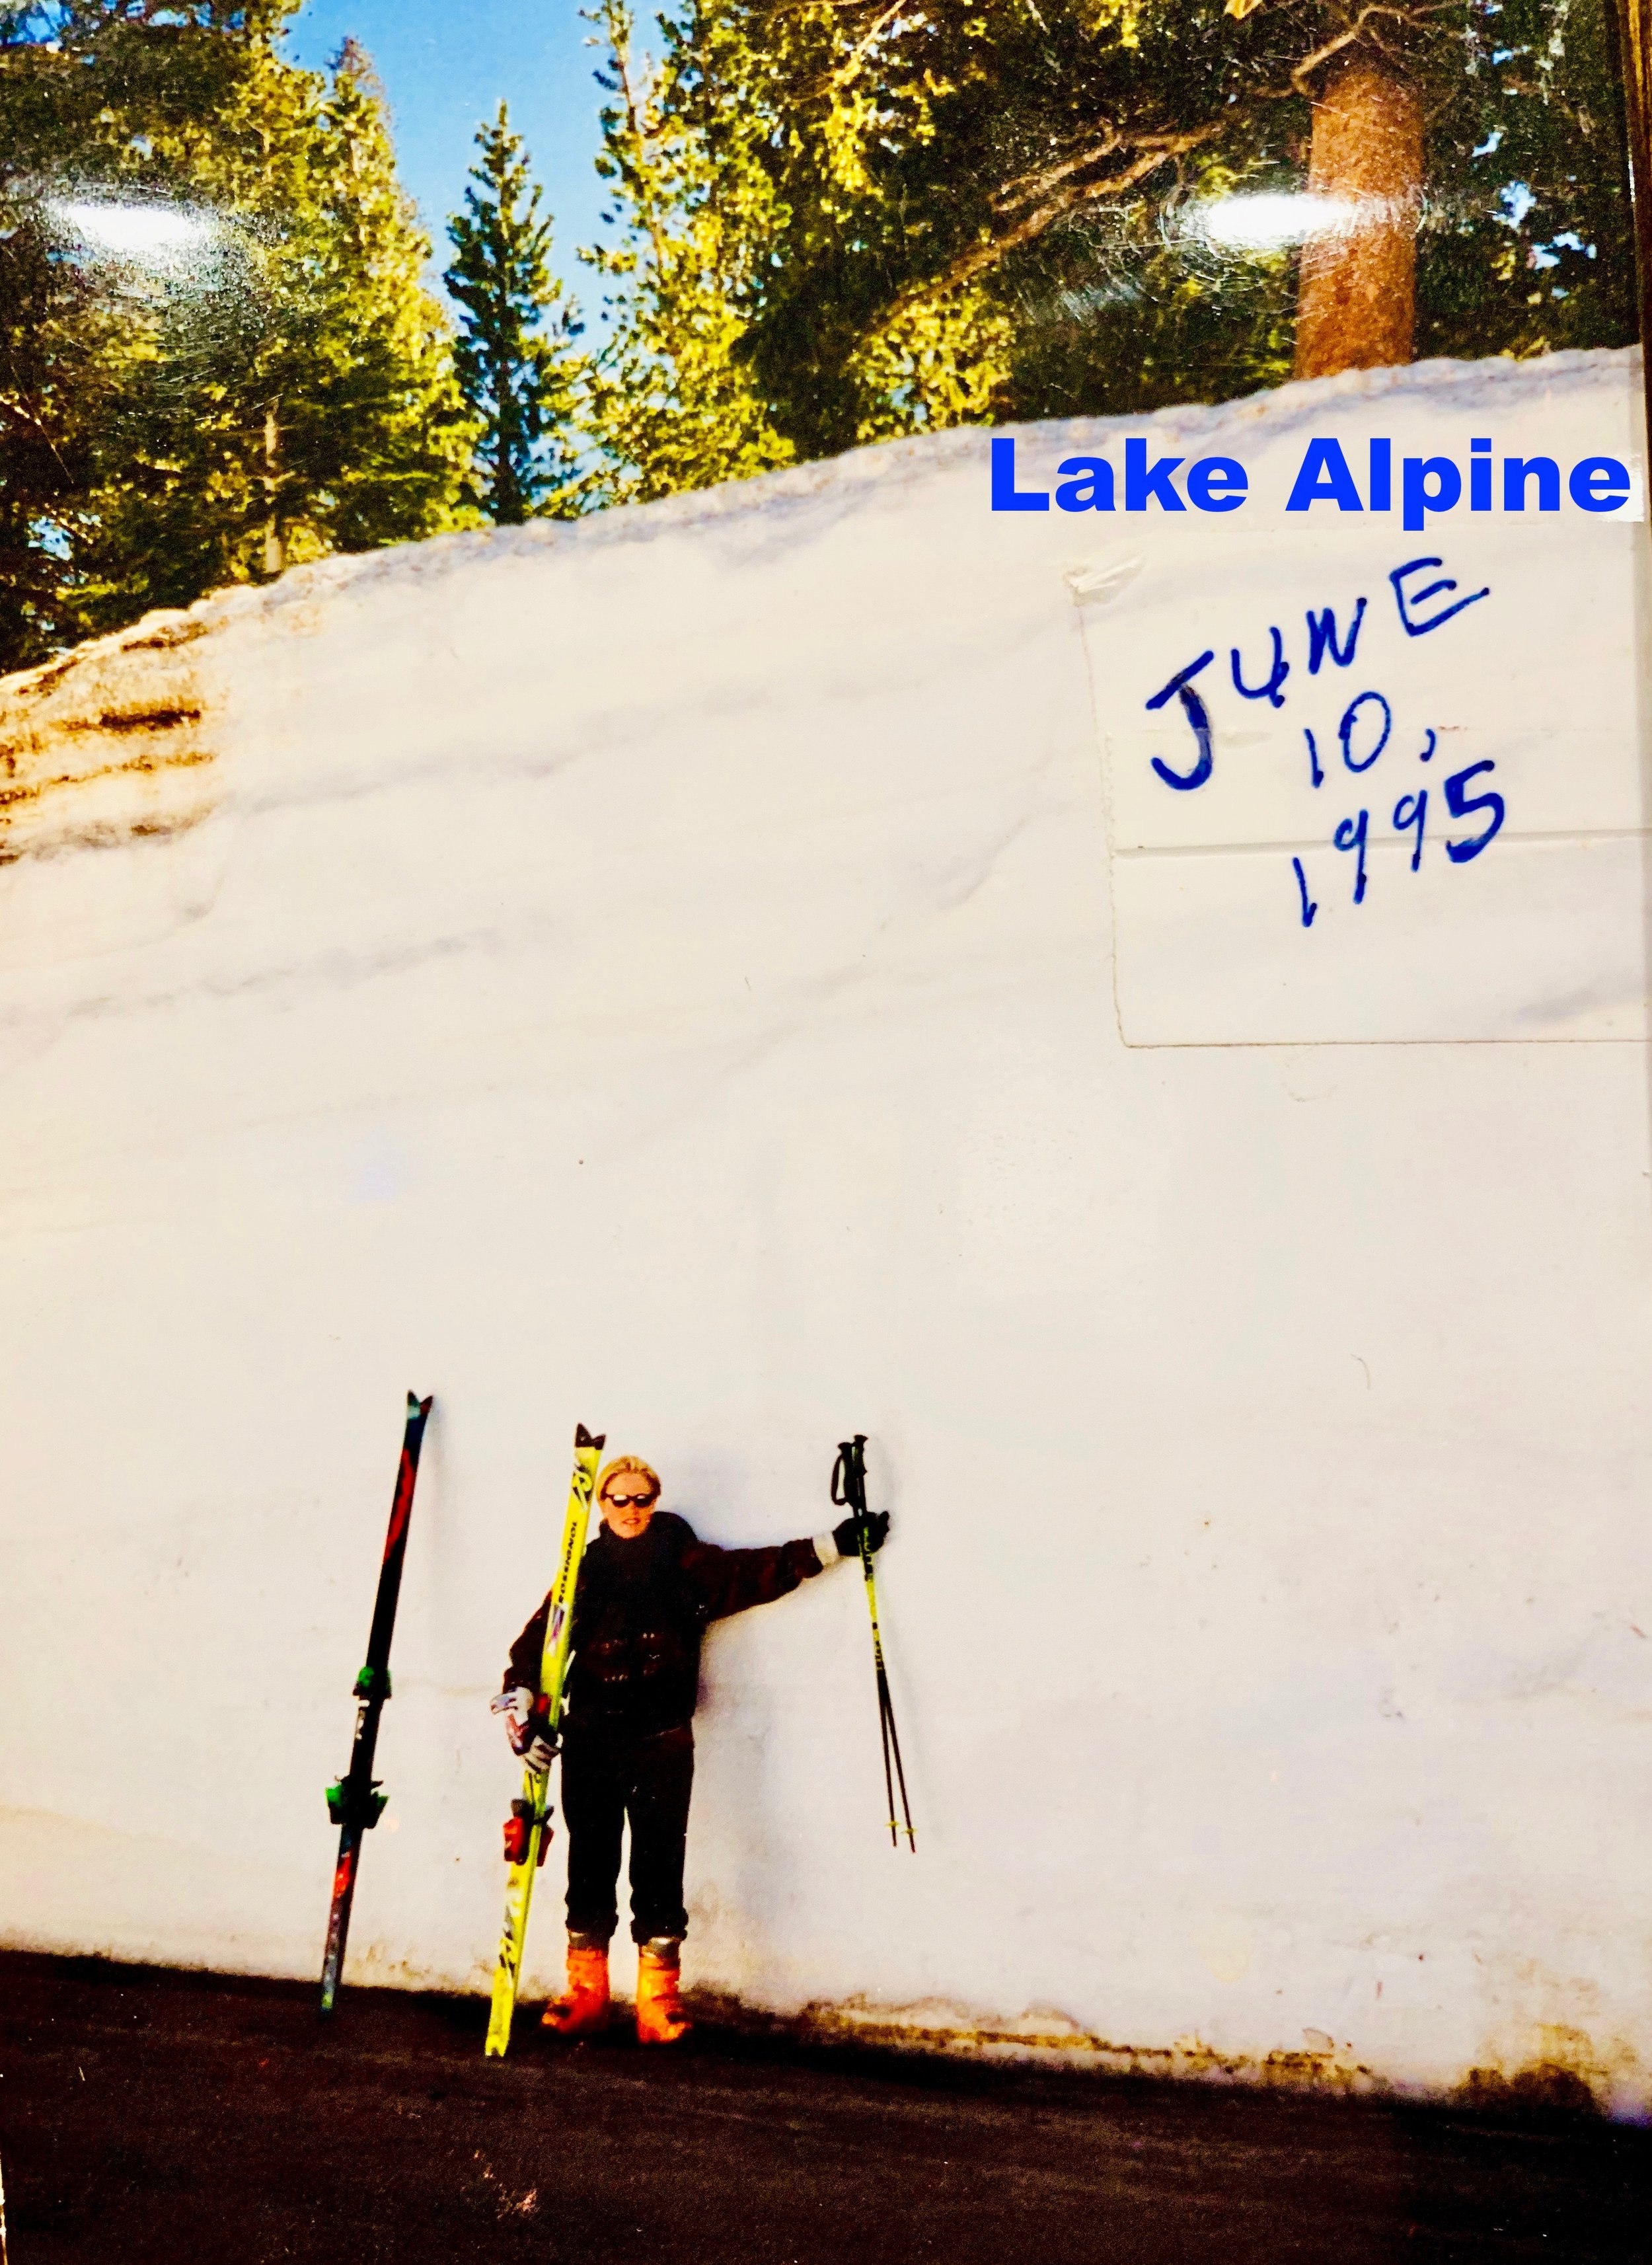 Lake Alpine, Ca - This picture was taken on June 10th 1995, on the East end of Alpine Lake near the road closure. On this day, we had hiked Inspiration Point above Lake Alpine and skied it.Mountain peeks in the Ebbetts Pass area provided snow skiing all the way through September of that year.Bear Valley Ski Resort had closed for the season in April with 20 feet of snow still on the ground. Obviously, we weren't done skiing :-)